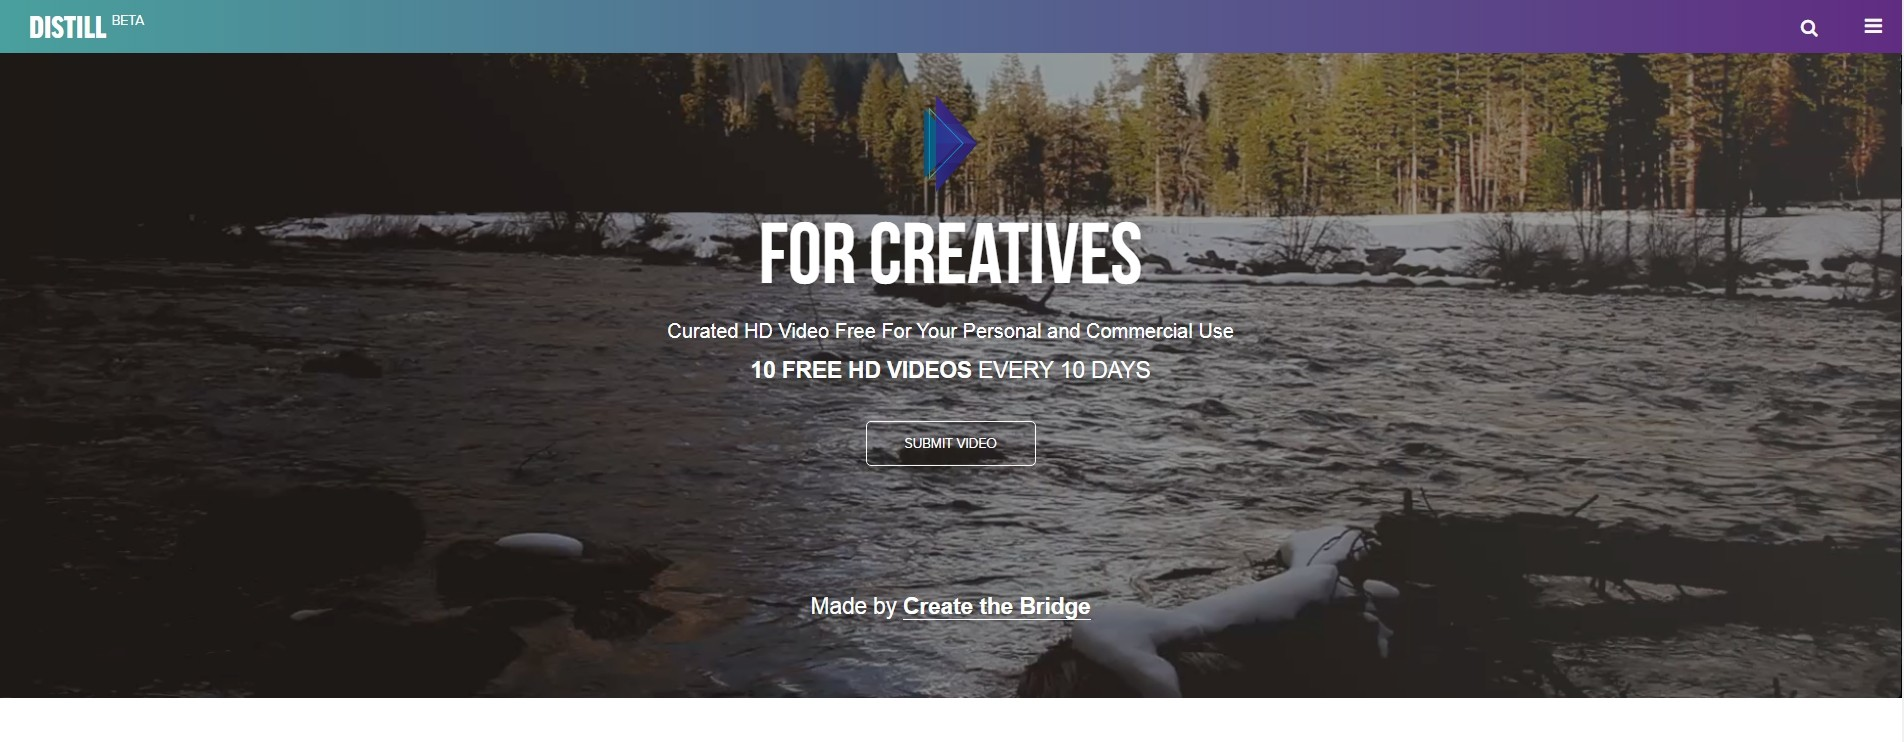 Distill Free HD Stock Video & HD Video Clips